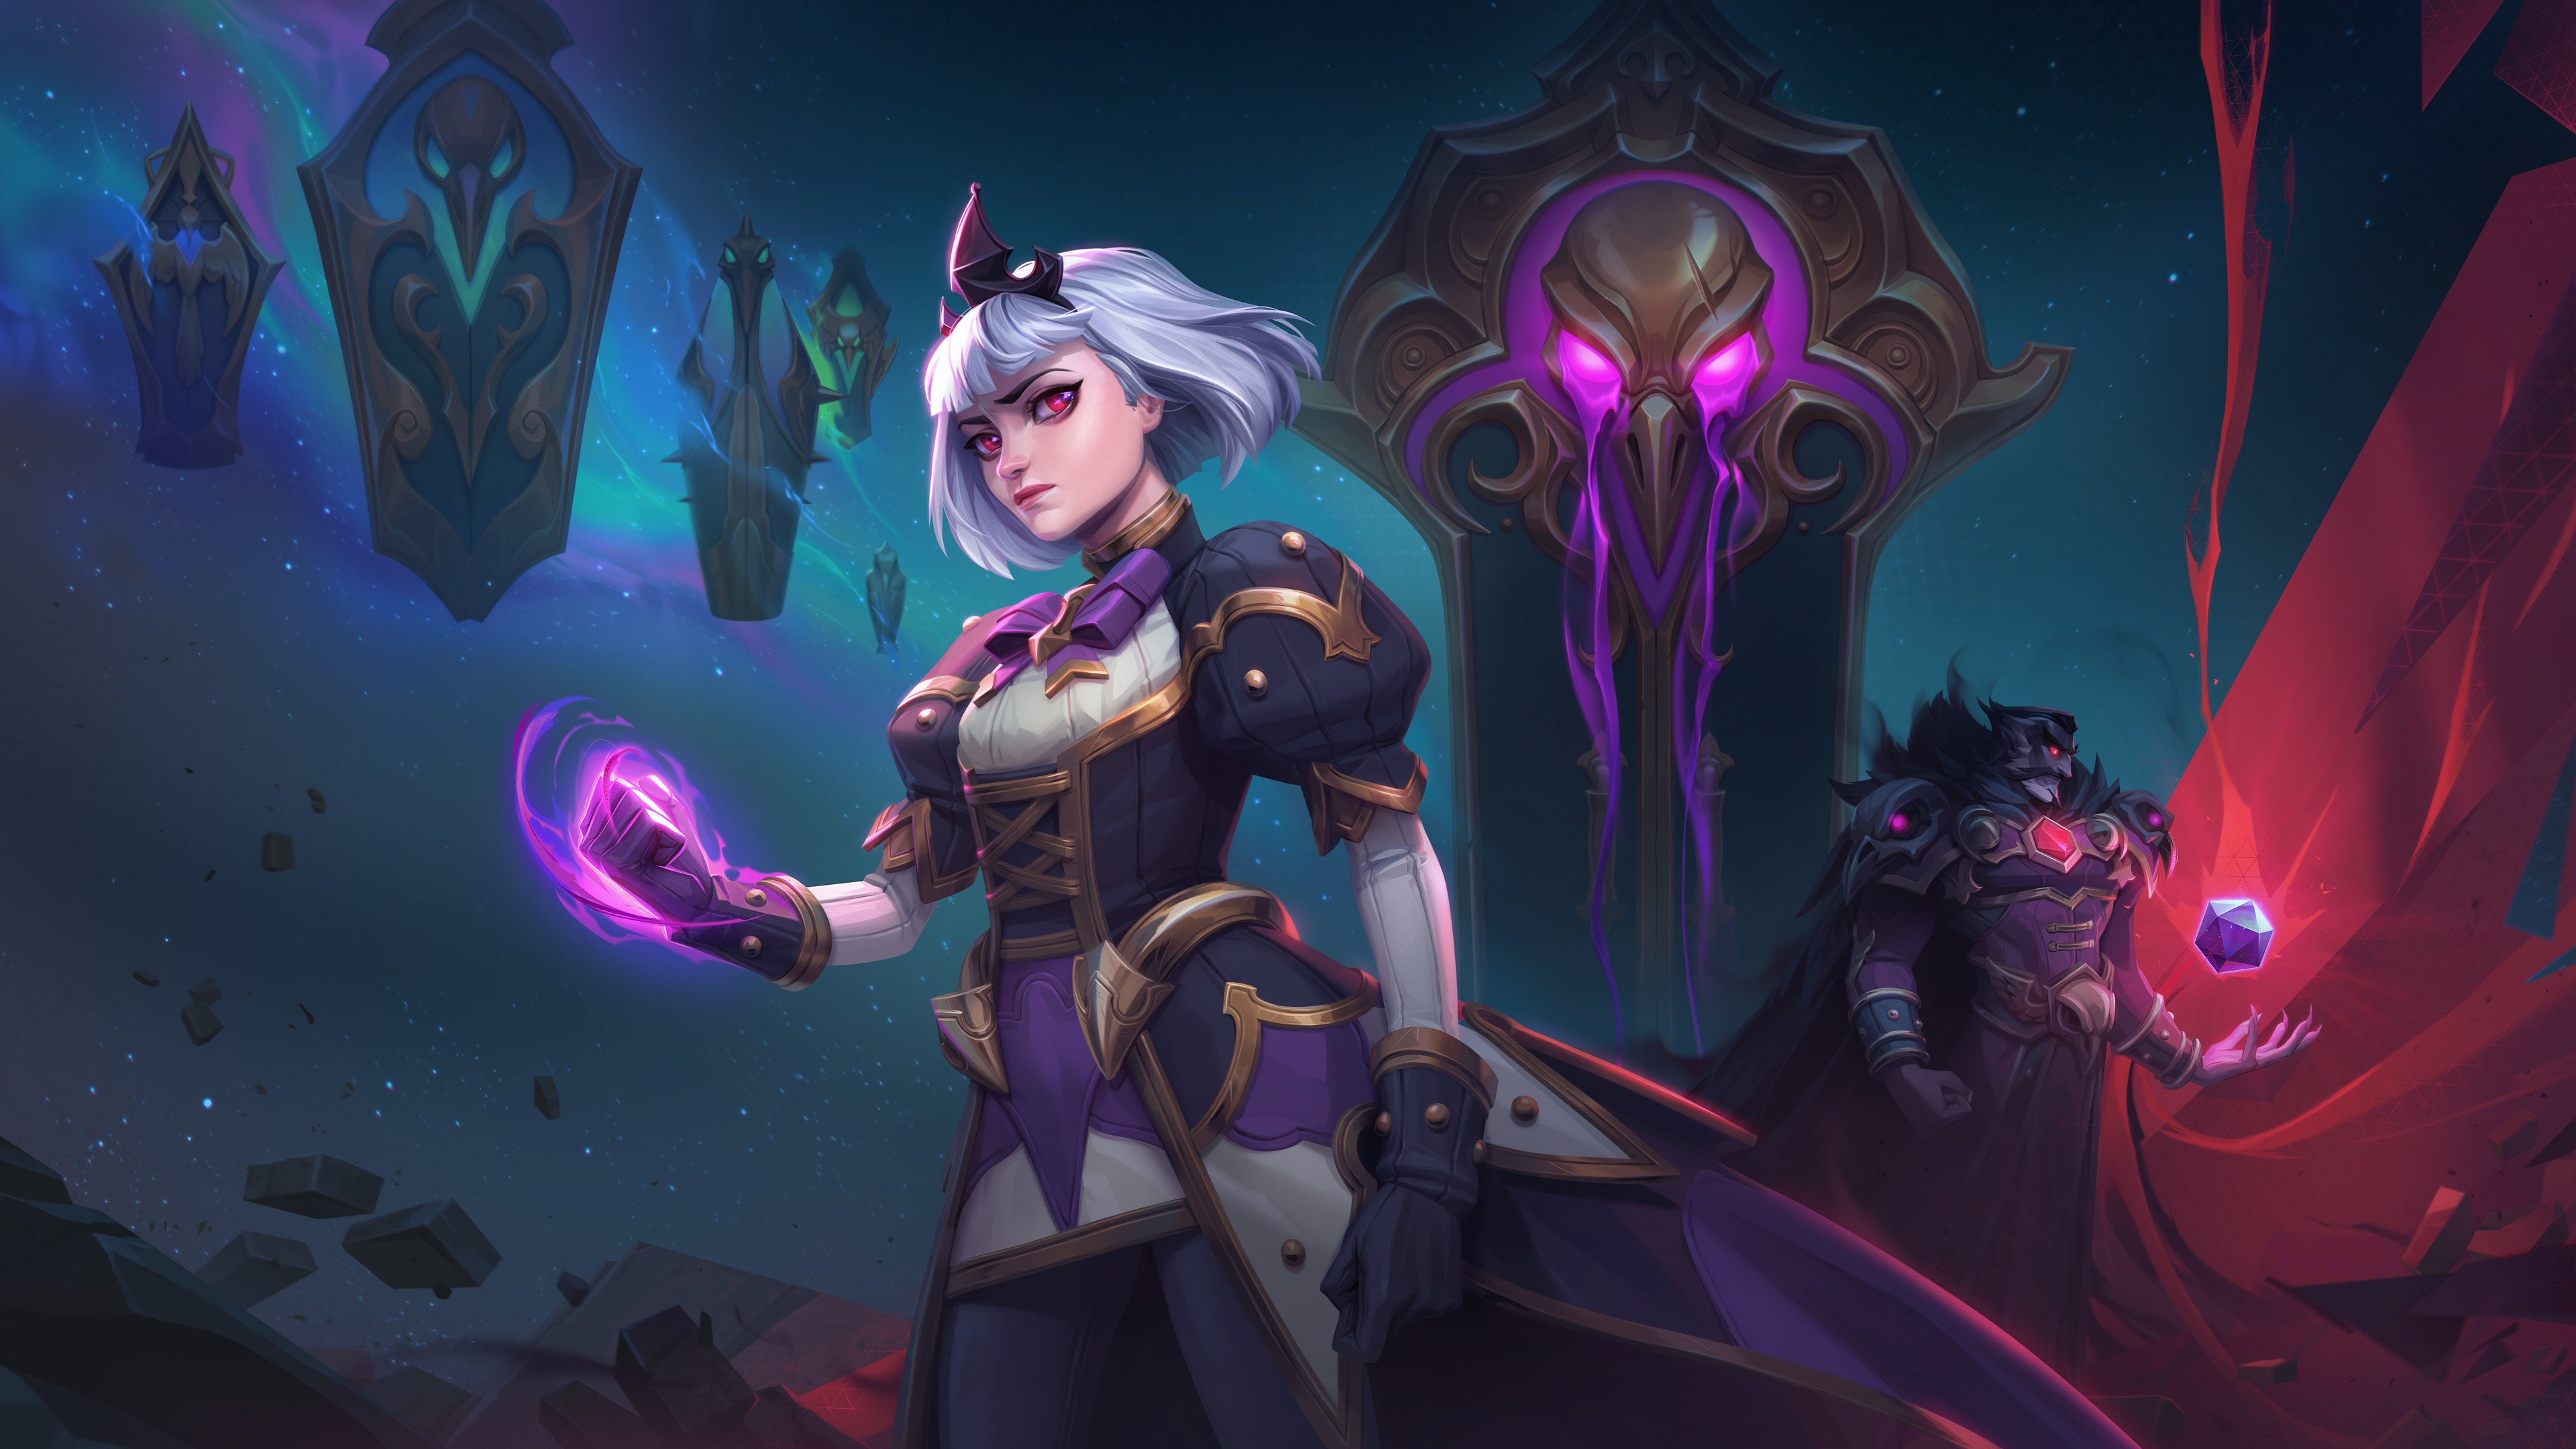 orphea heroes of the storm 4k 1543621015 - Orphea Heroes Of The Storm 4k - heroes of the storm wallpapers, hd-wallpapers, games wallpapers, 4k-wallpapers, 2018 games wallpapers